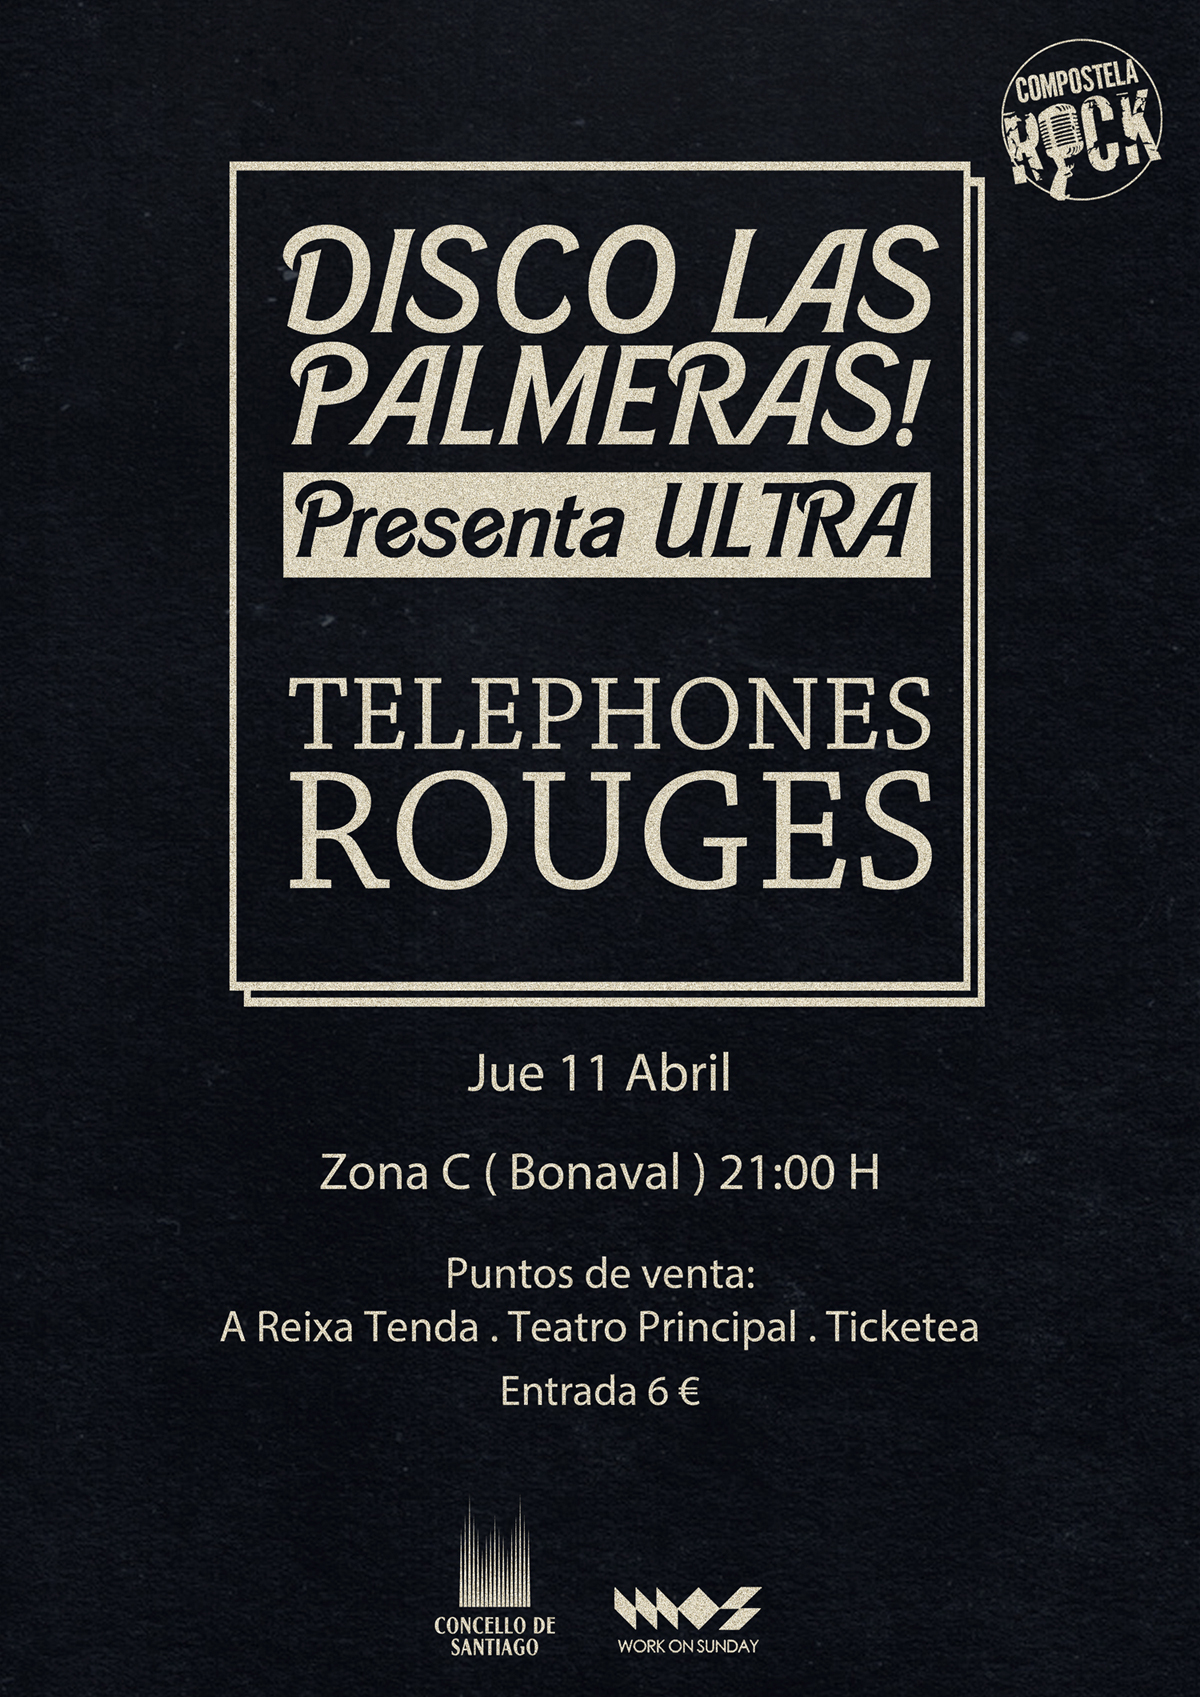 Cartel Disco Las Palmeras Telephones Rouges